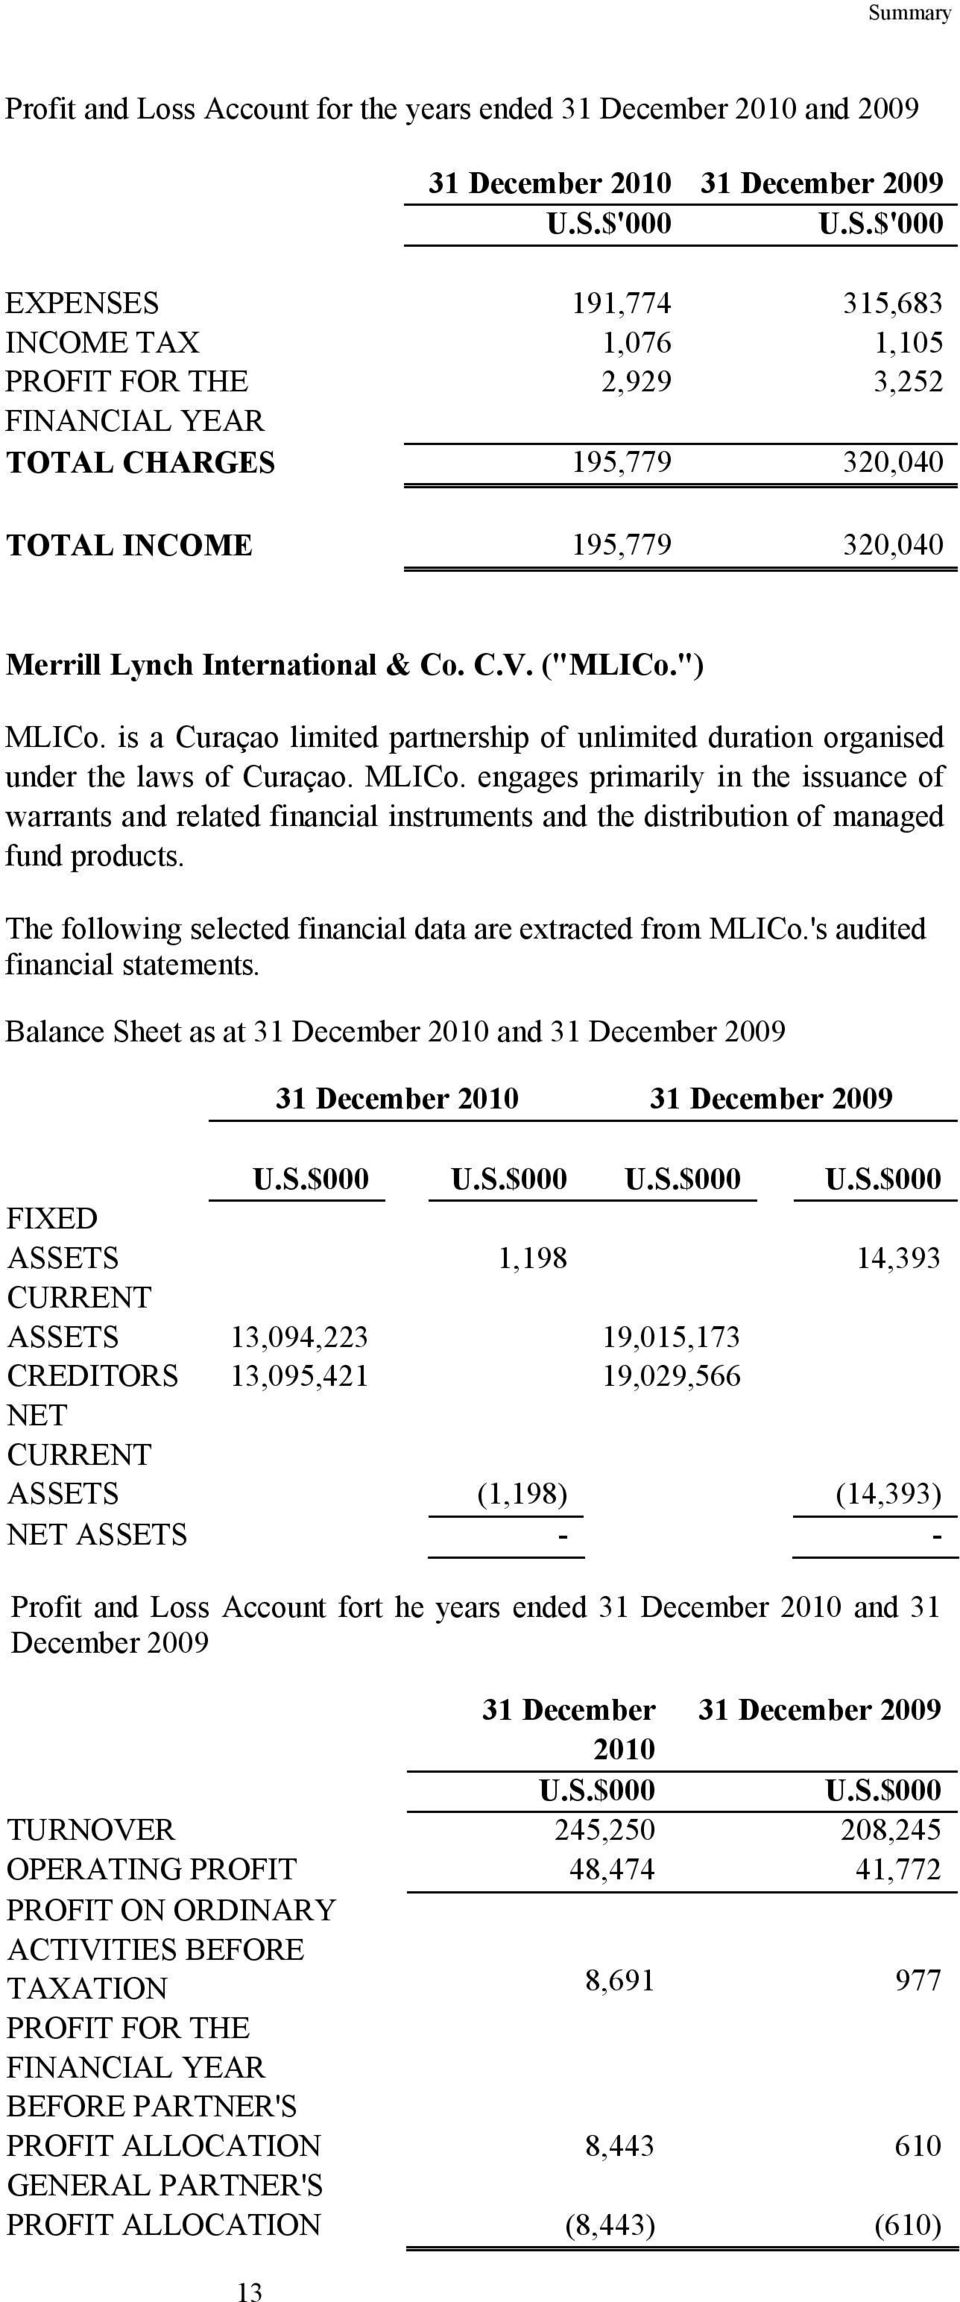 The following selected financial data are extracted from MLICo.'s audited financial statements. Balance Sheet as at 31 December 2010 and 31 December 2009 13 31 December 2010 31 December 2009 U.S.$000 U.